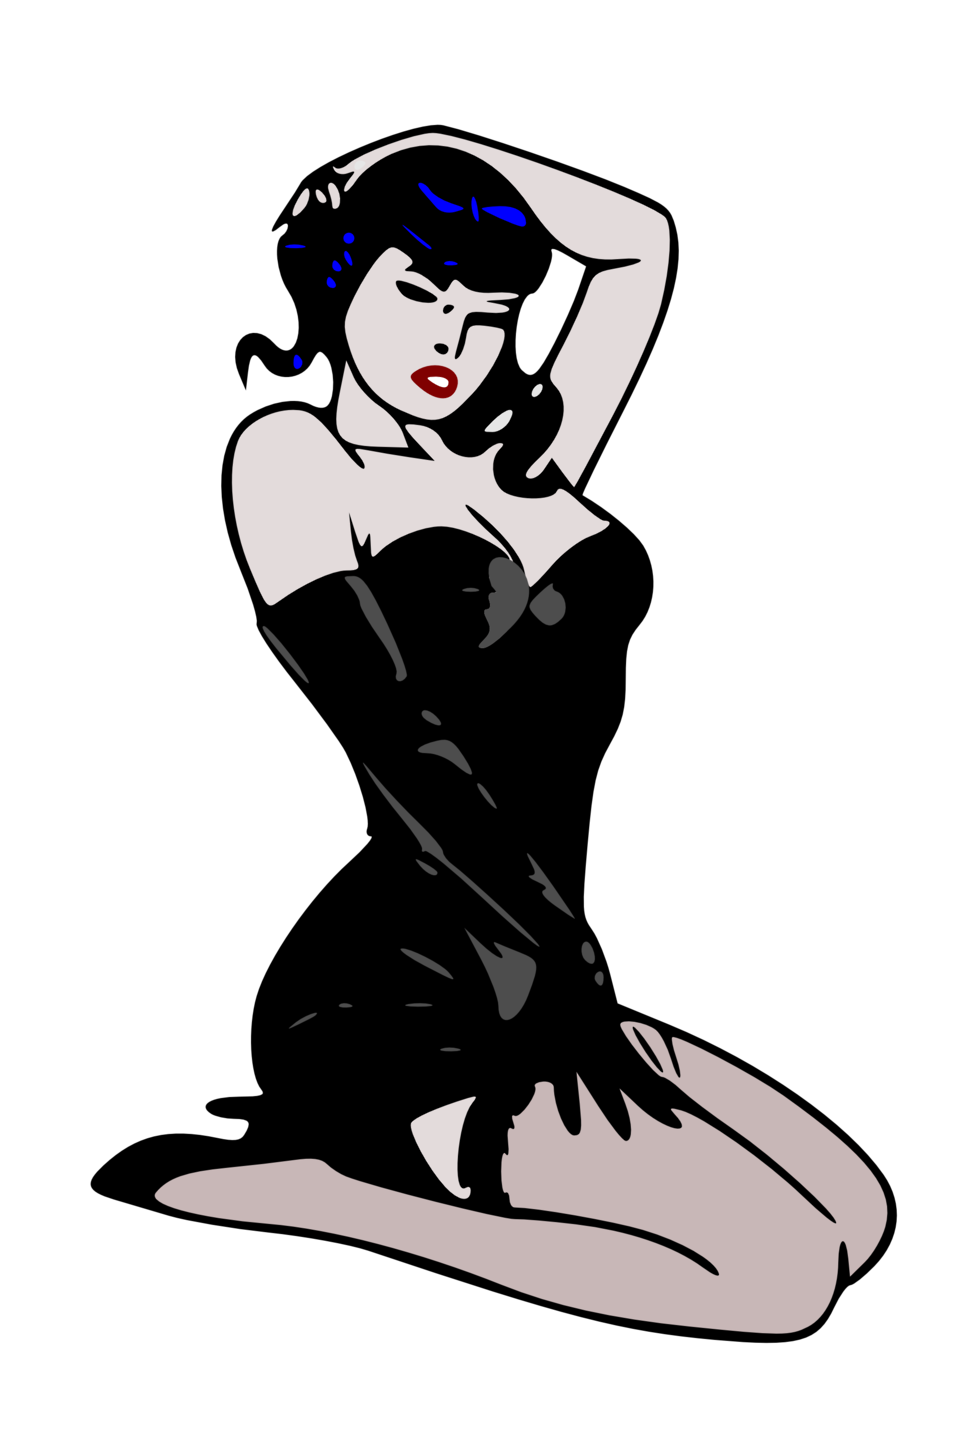 Free pin up girl clipart freeuse library Public Domain Clip Art Image | Pin-up girl | ID: 13526053816201 ... freeuse library